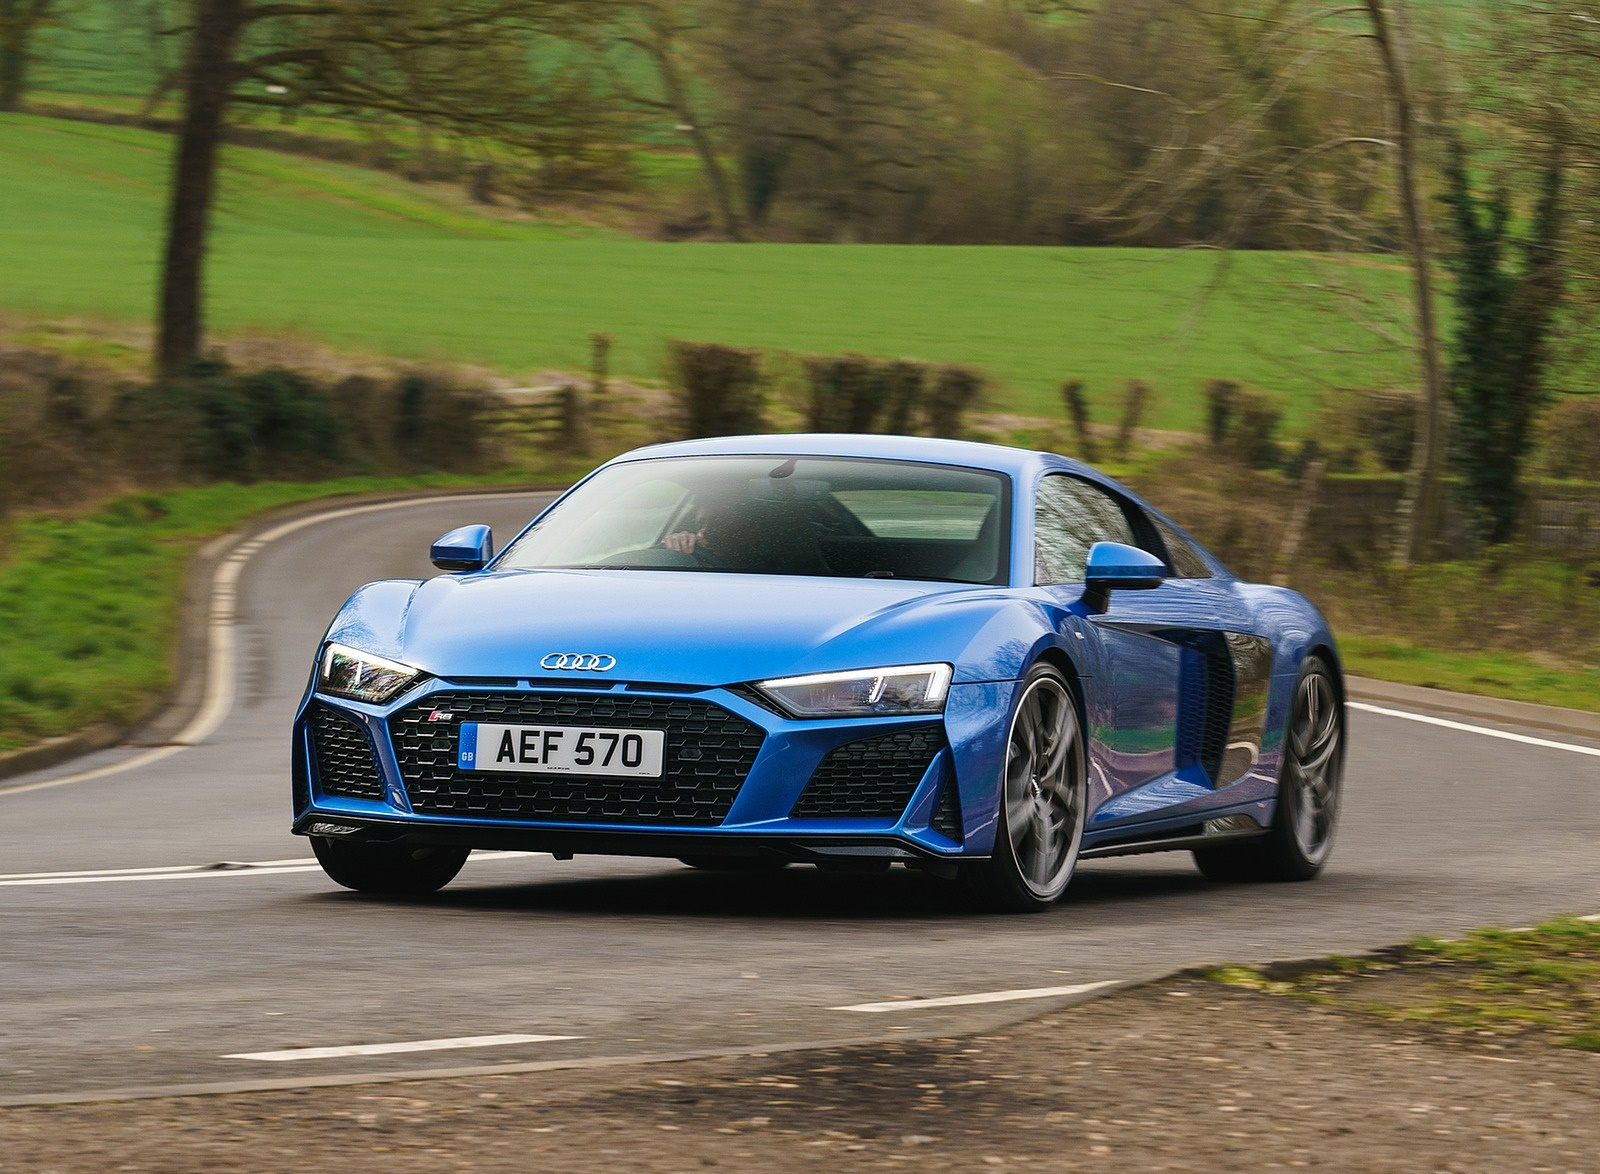 2019 Audi R8 V10 Coupe quattro (UK-Spec) Front Three-Quarter Wallpaper (4)